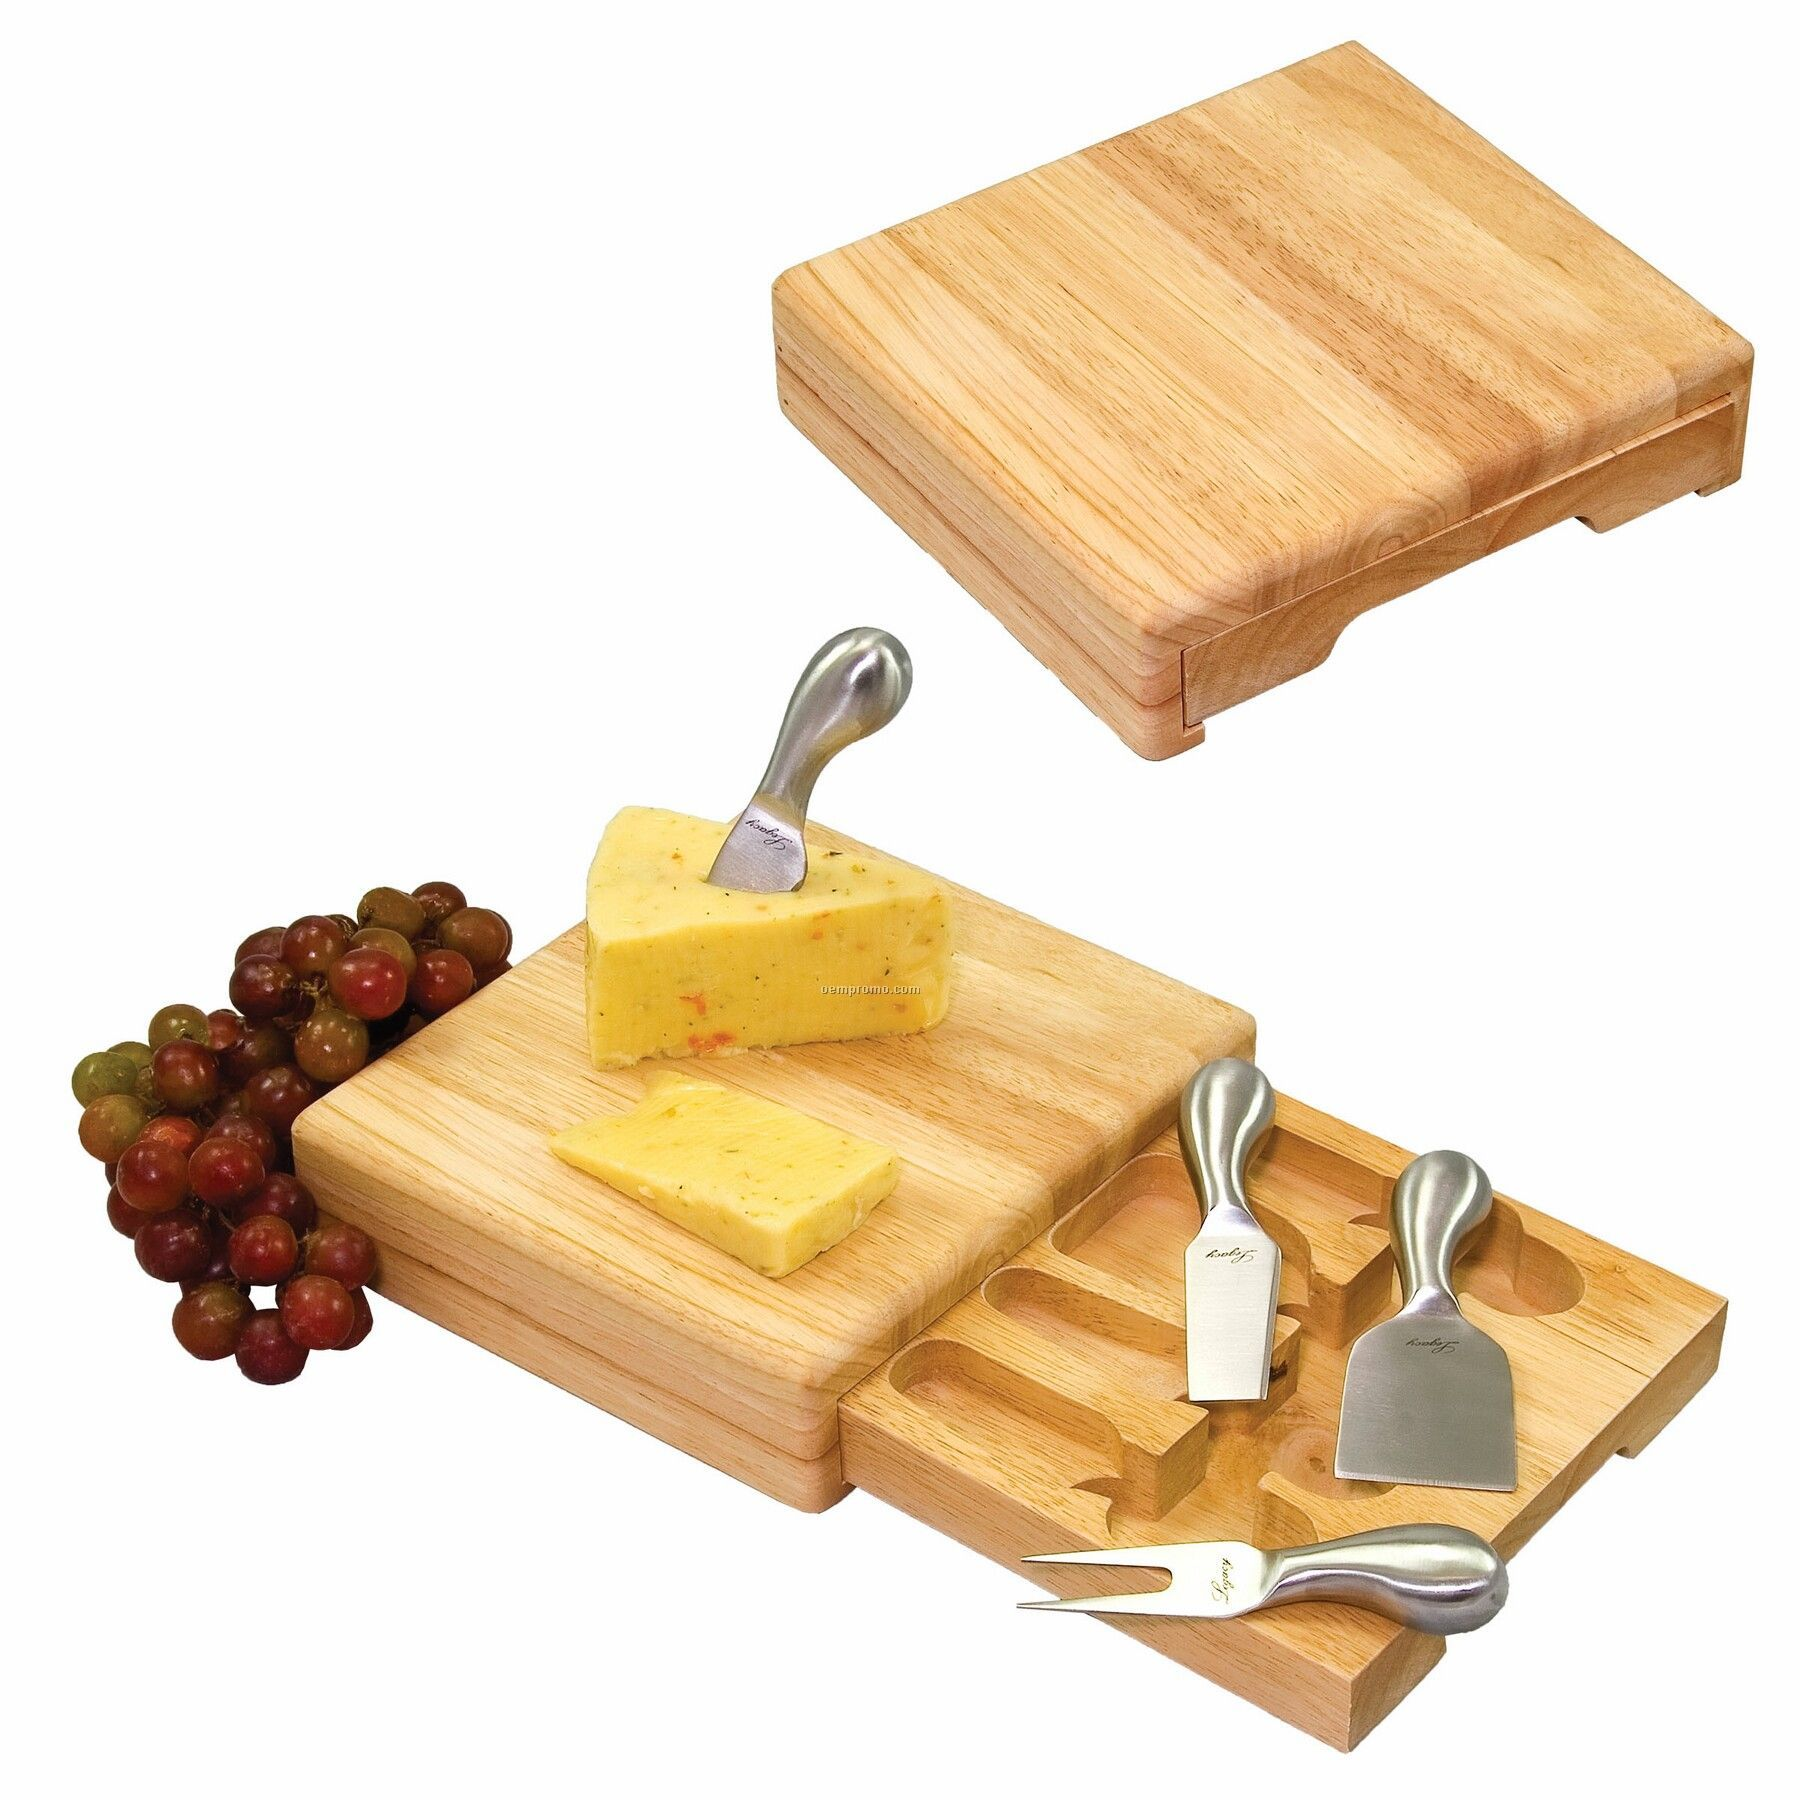 Festiva Square Rubber Wood Cutting Board W/ Drawer & 4 Cheese Tools